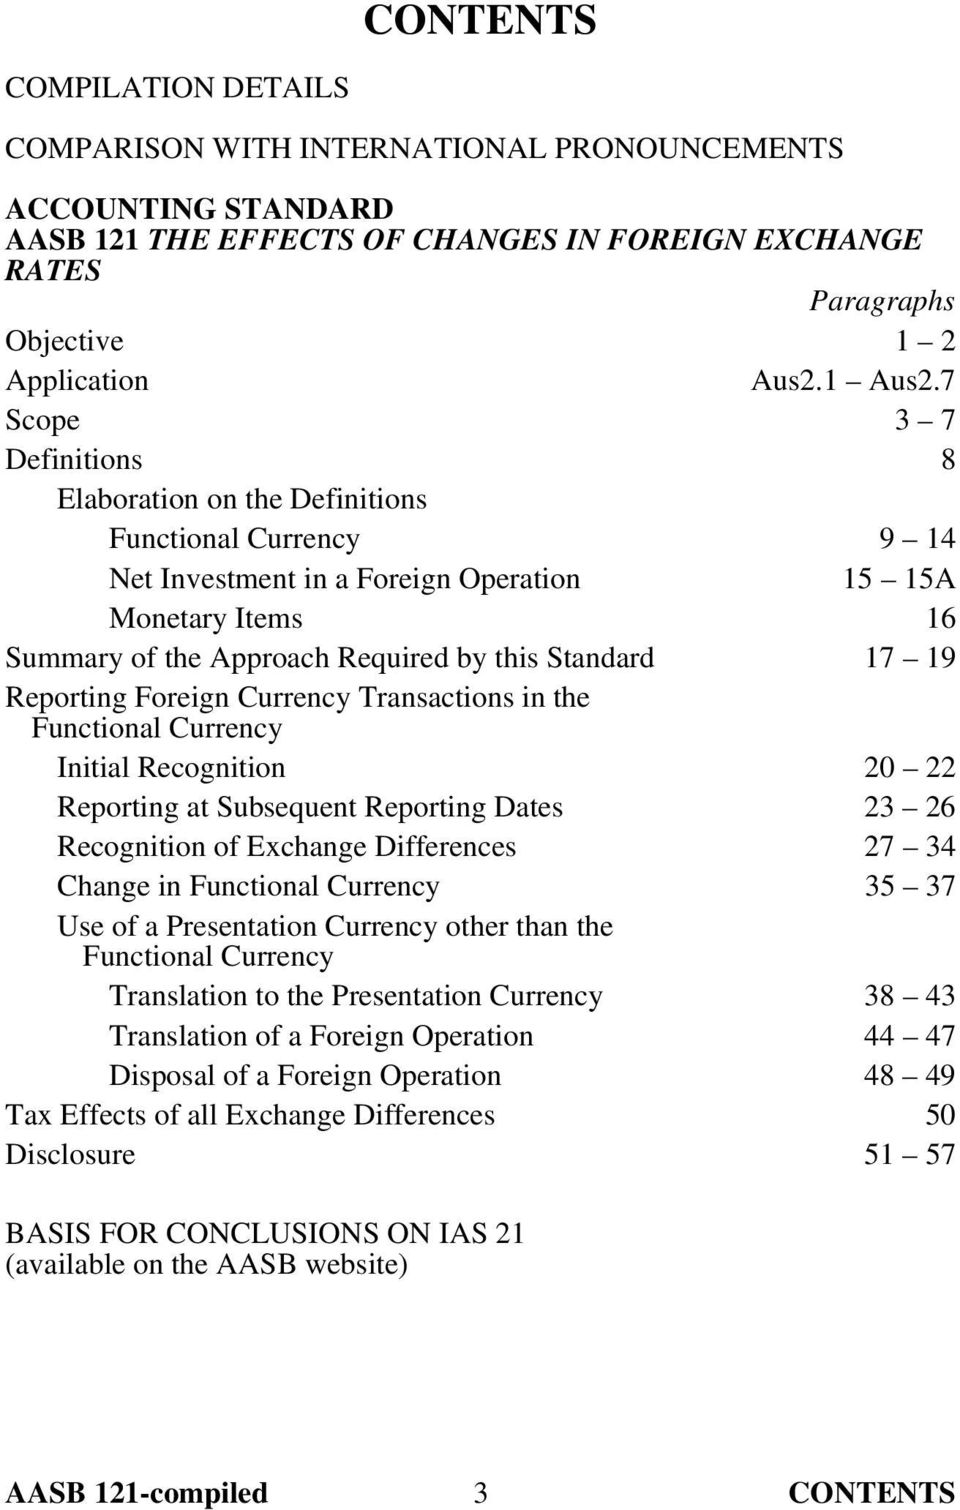 7 Scope 3 7 Definitions 8 Elaboration on the Definitions Functional Currency 9 14 Net Investment in a Foreign Operation 15 15A Monetary Items 16 Summary of the Approach Required by this Standard 17